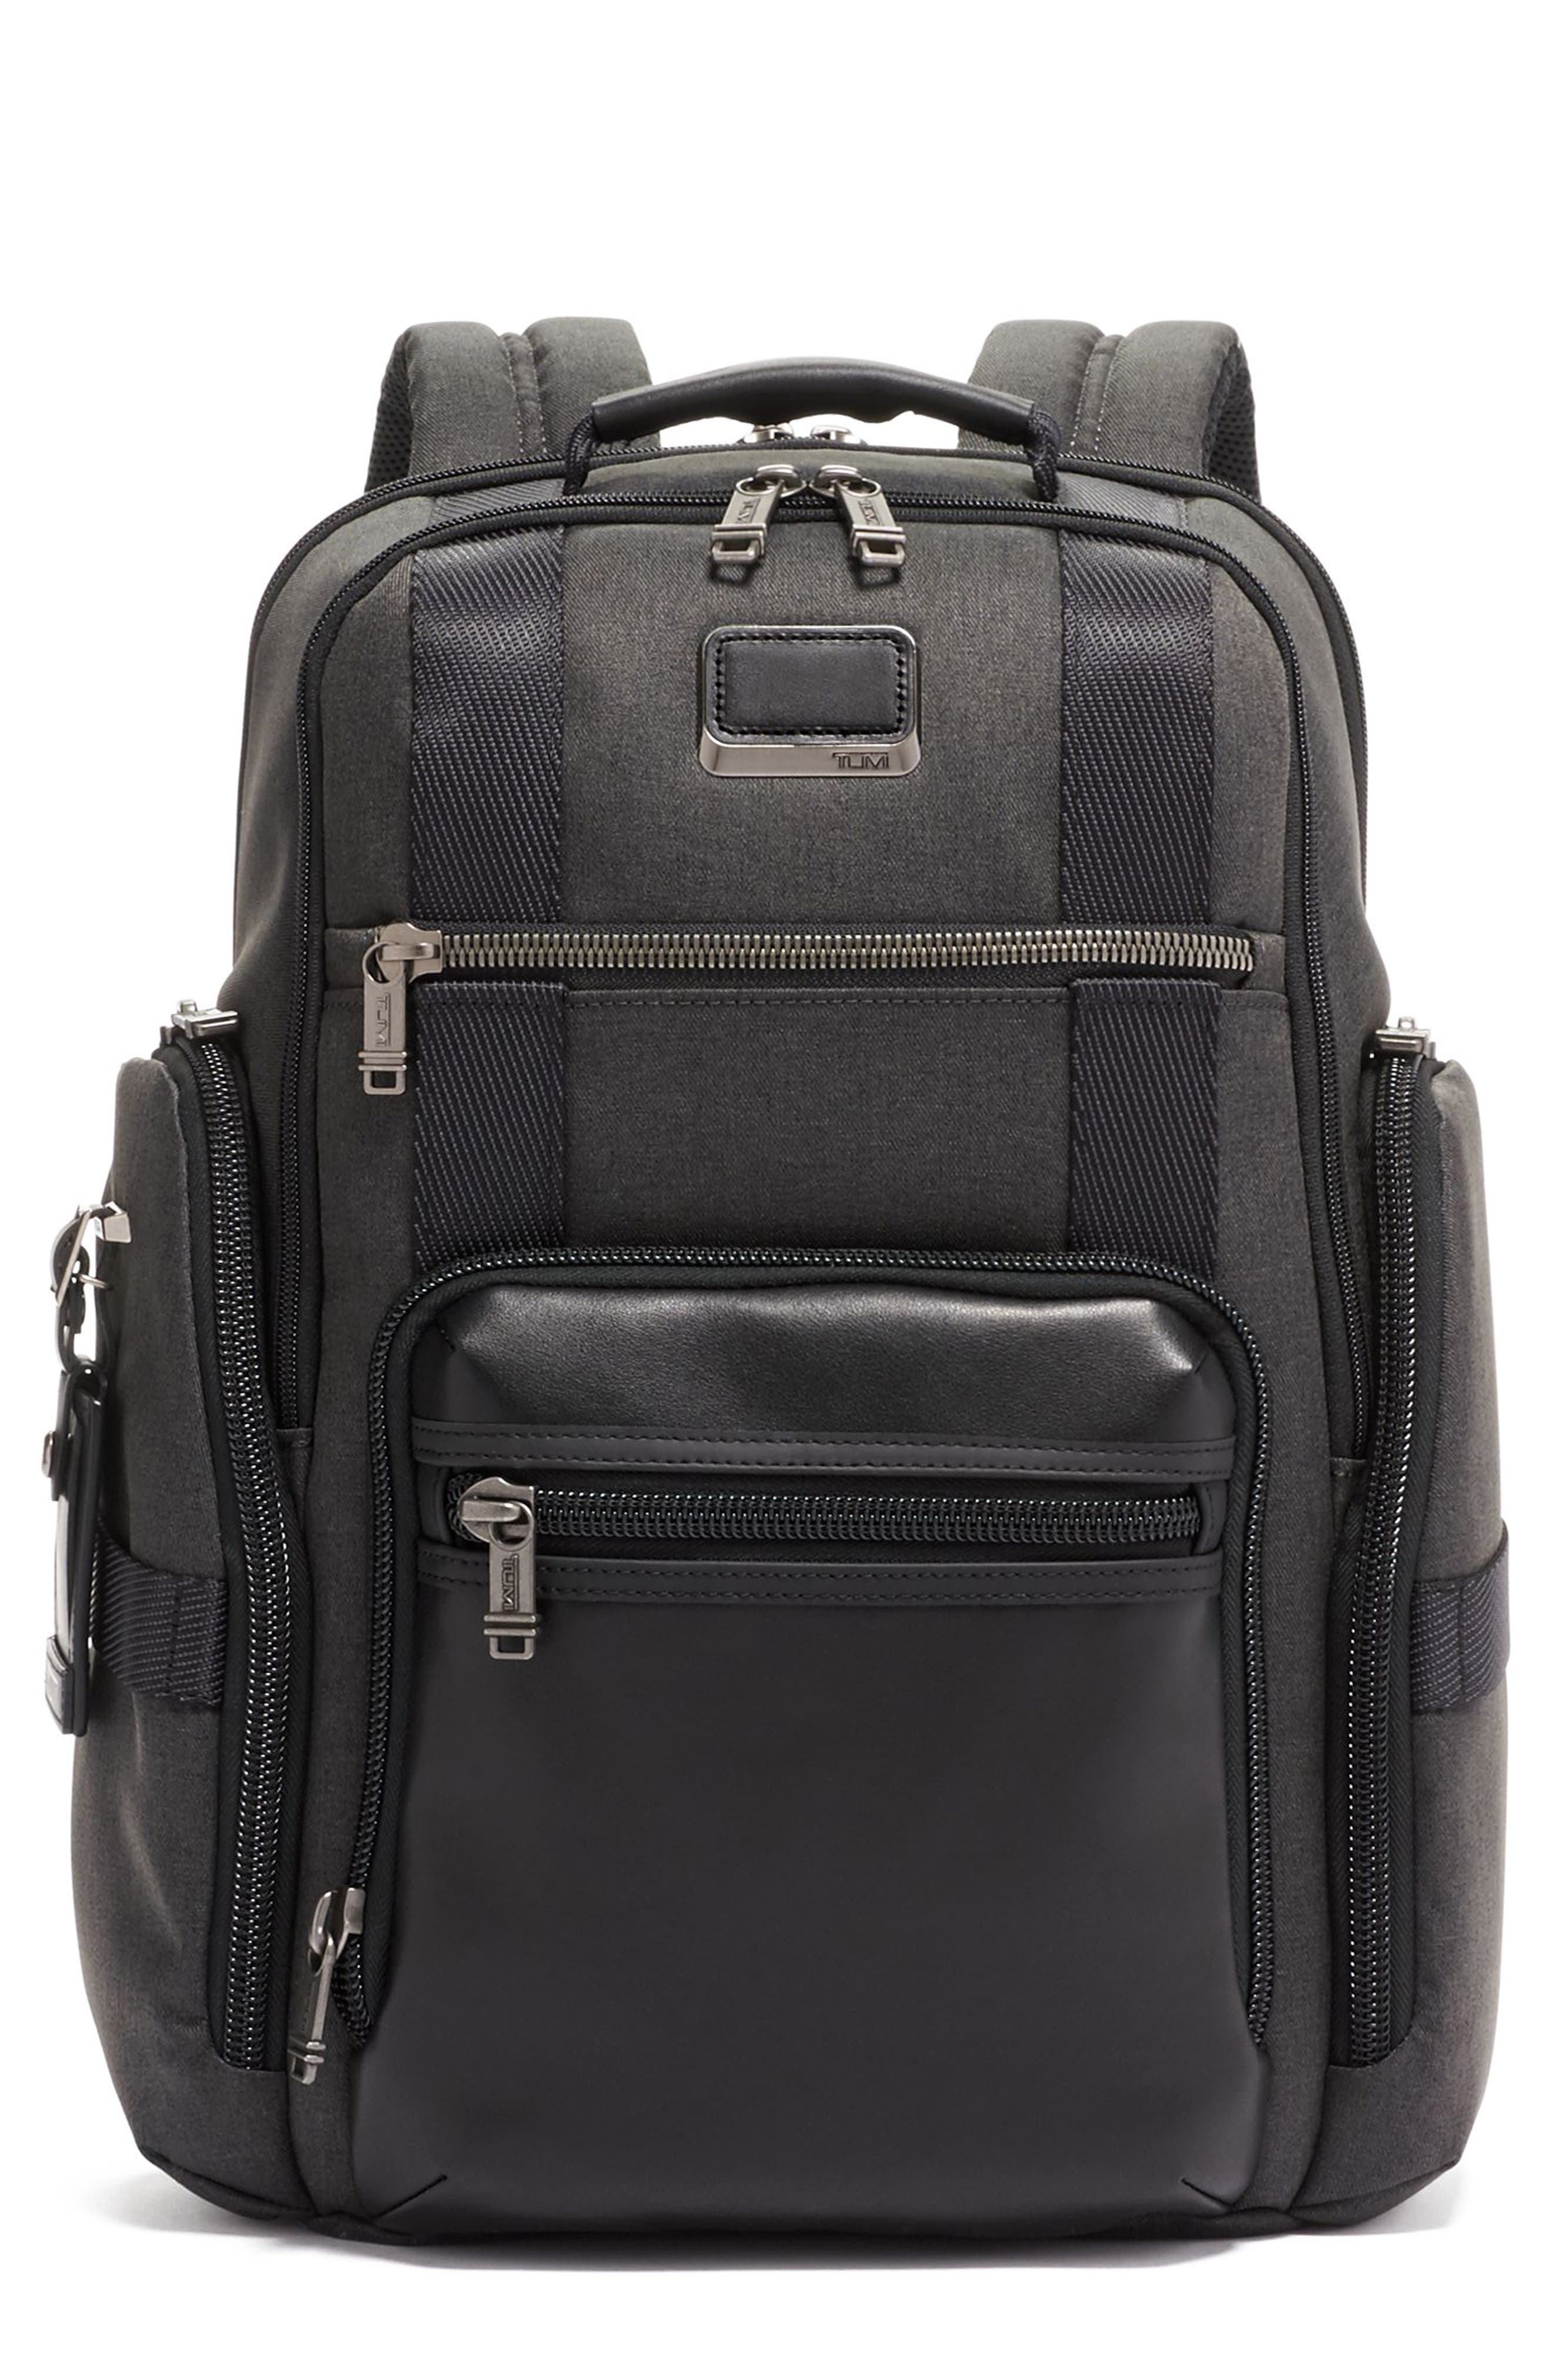 Men's Tumi Alpha Bravo Sheppard Deluxe Water Resistant 15-Inch Backpack - Grey